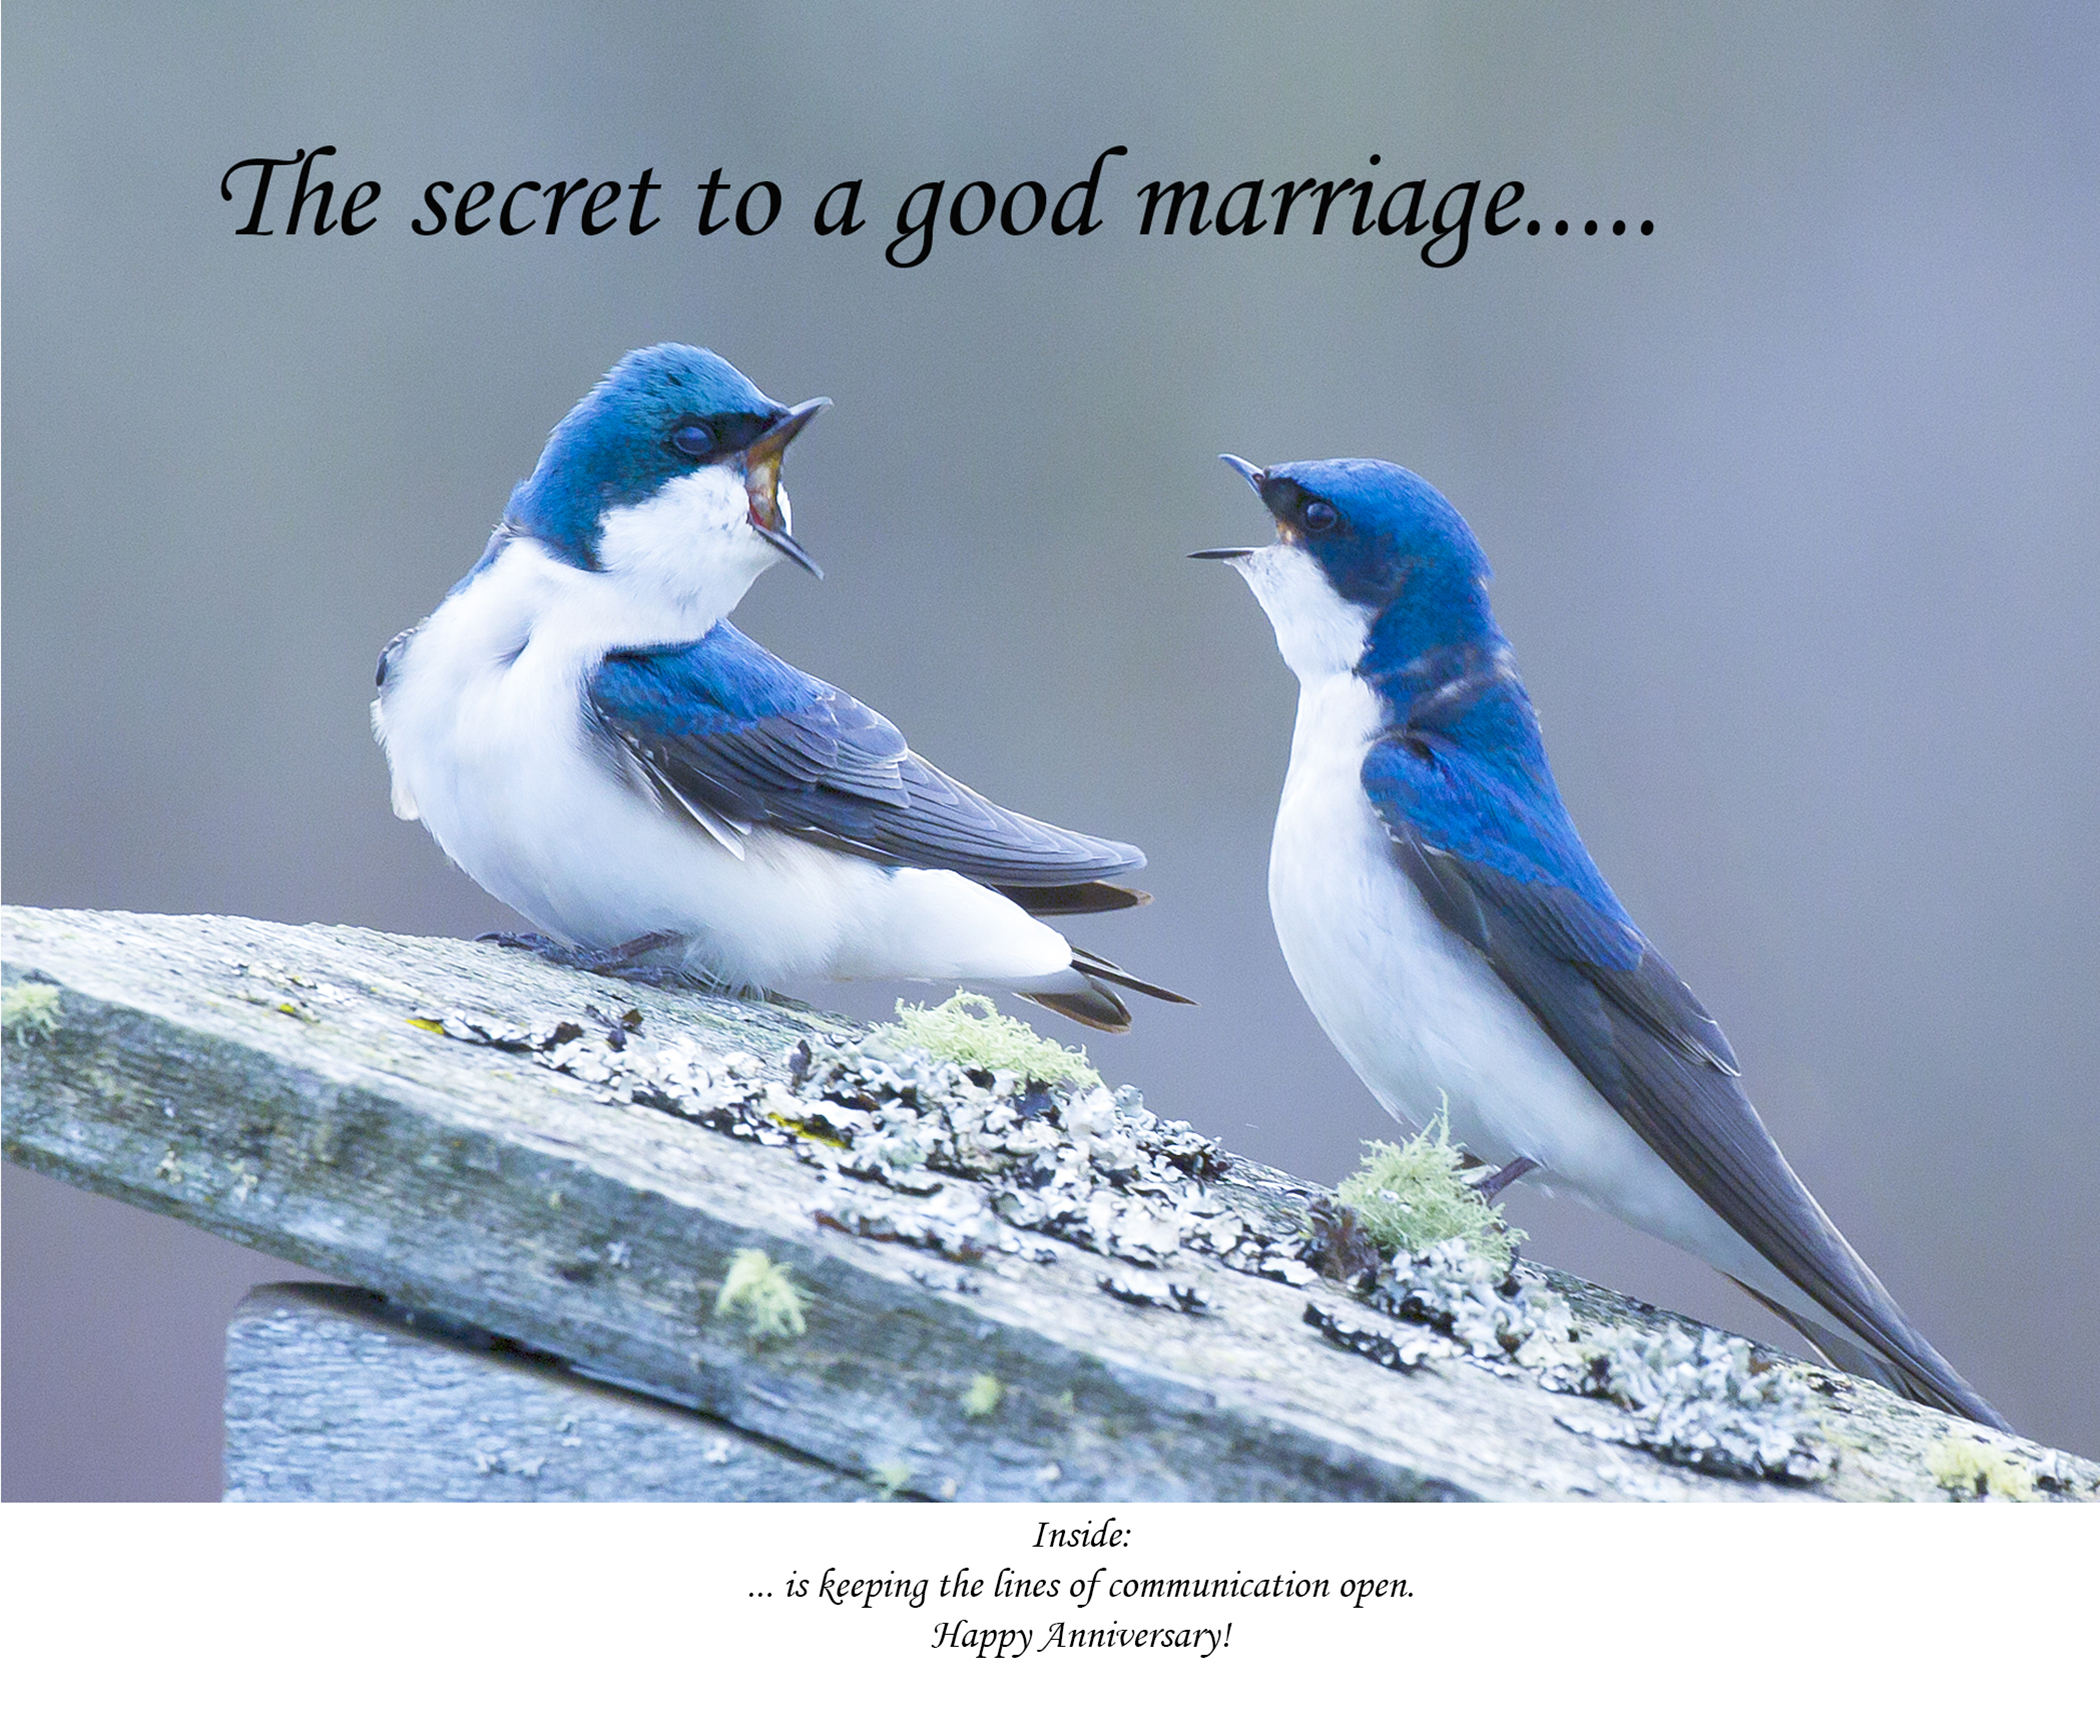 The secret to a good marriage...